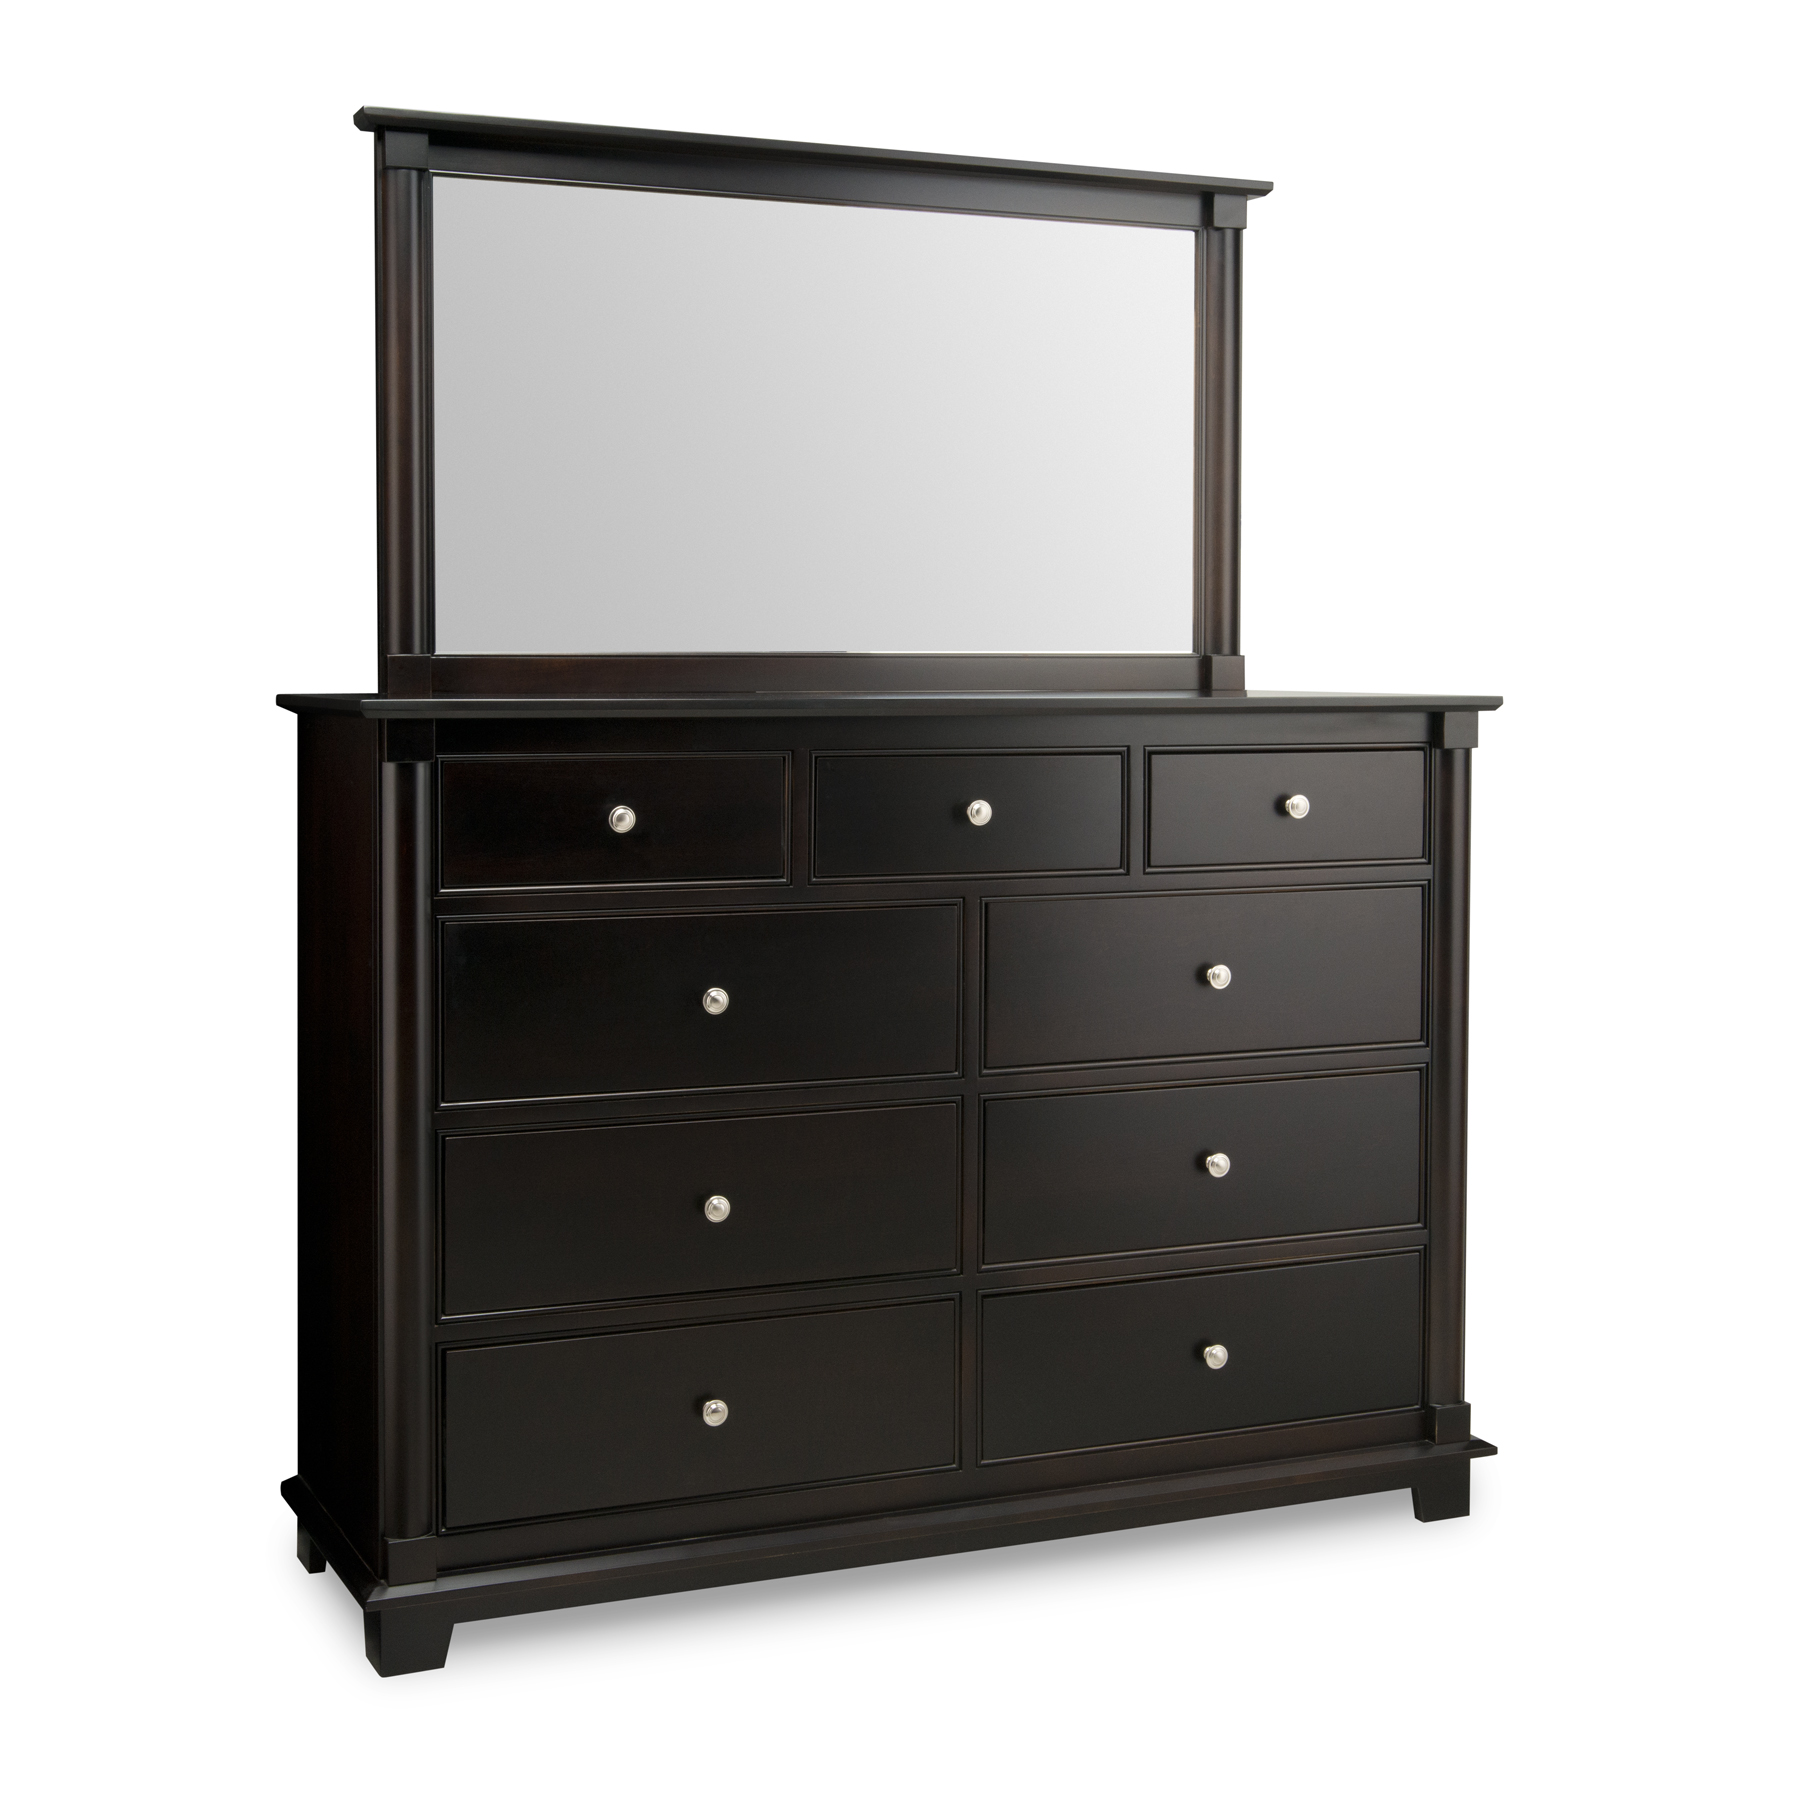 Hampton-9-Drawer-Dresser-B-PROOF-6.jpg